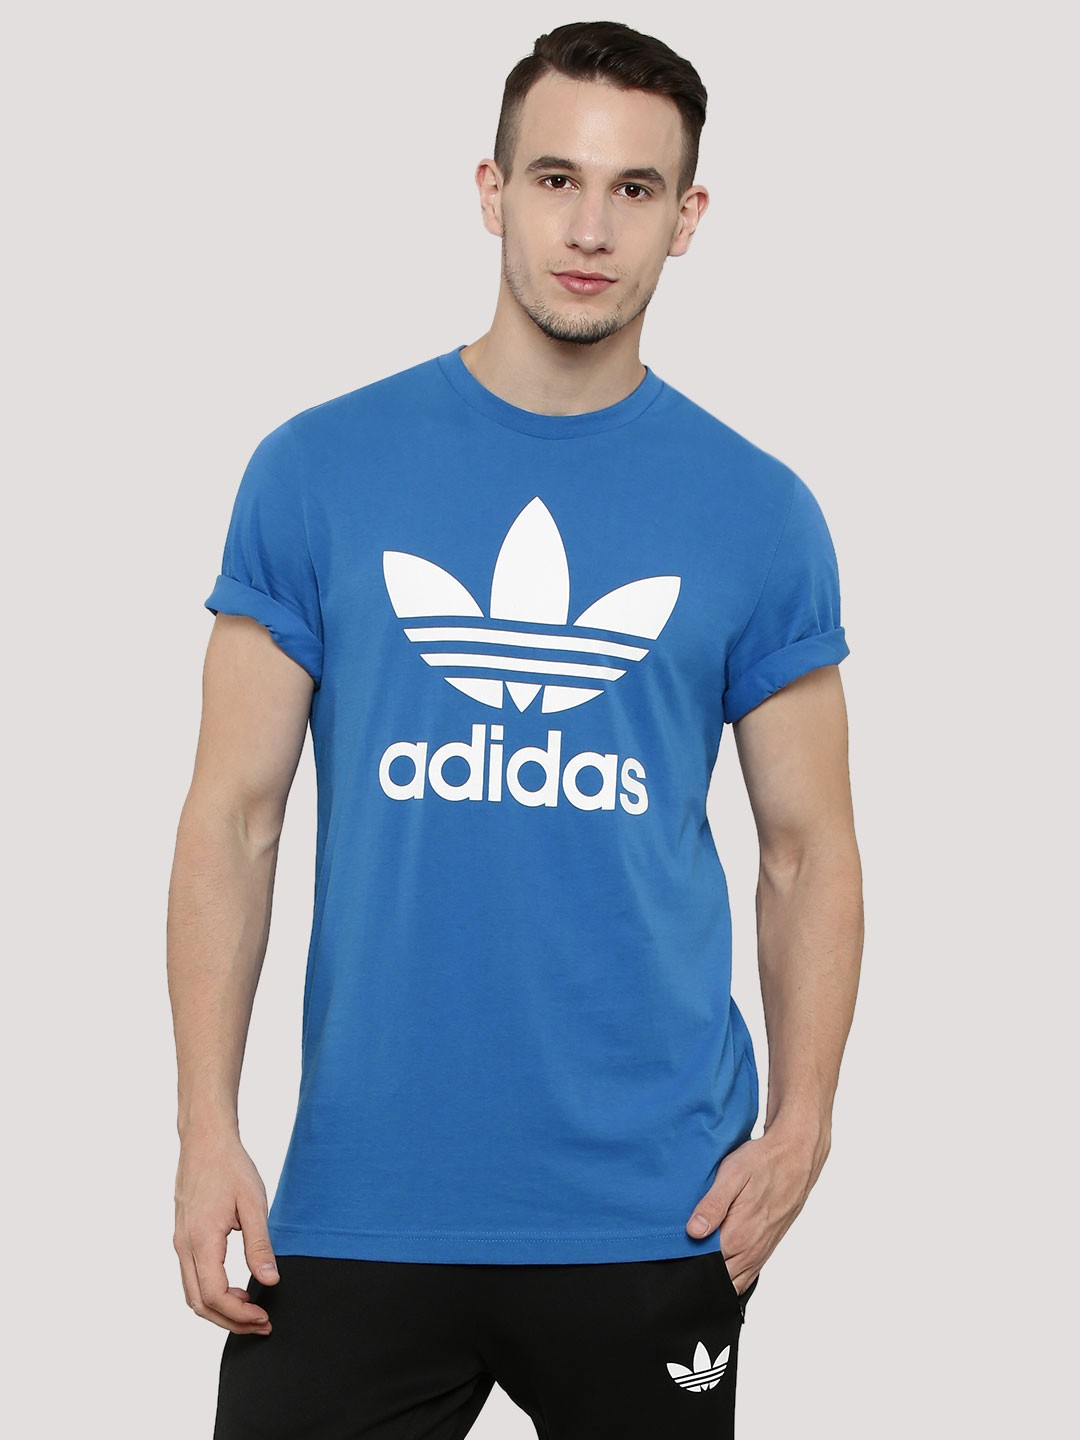 buy adidas originals t shirt with trefoil logo for men. Black Bedroom Furniture Sets. Home Design Ideas